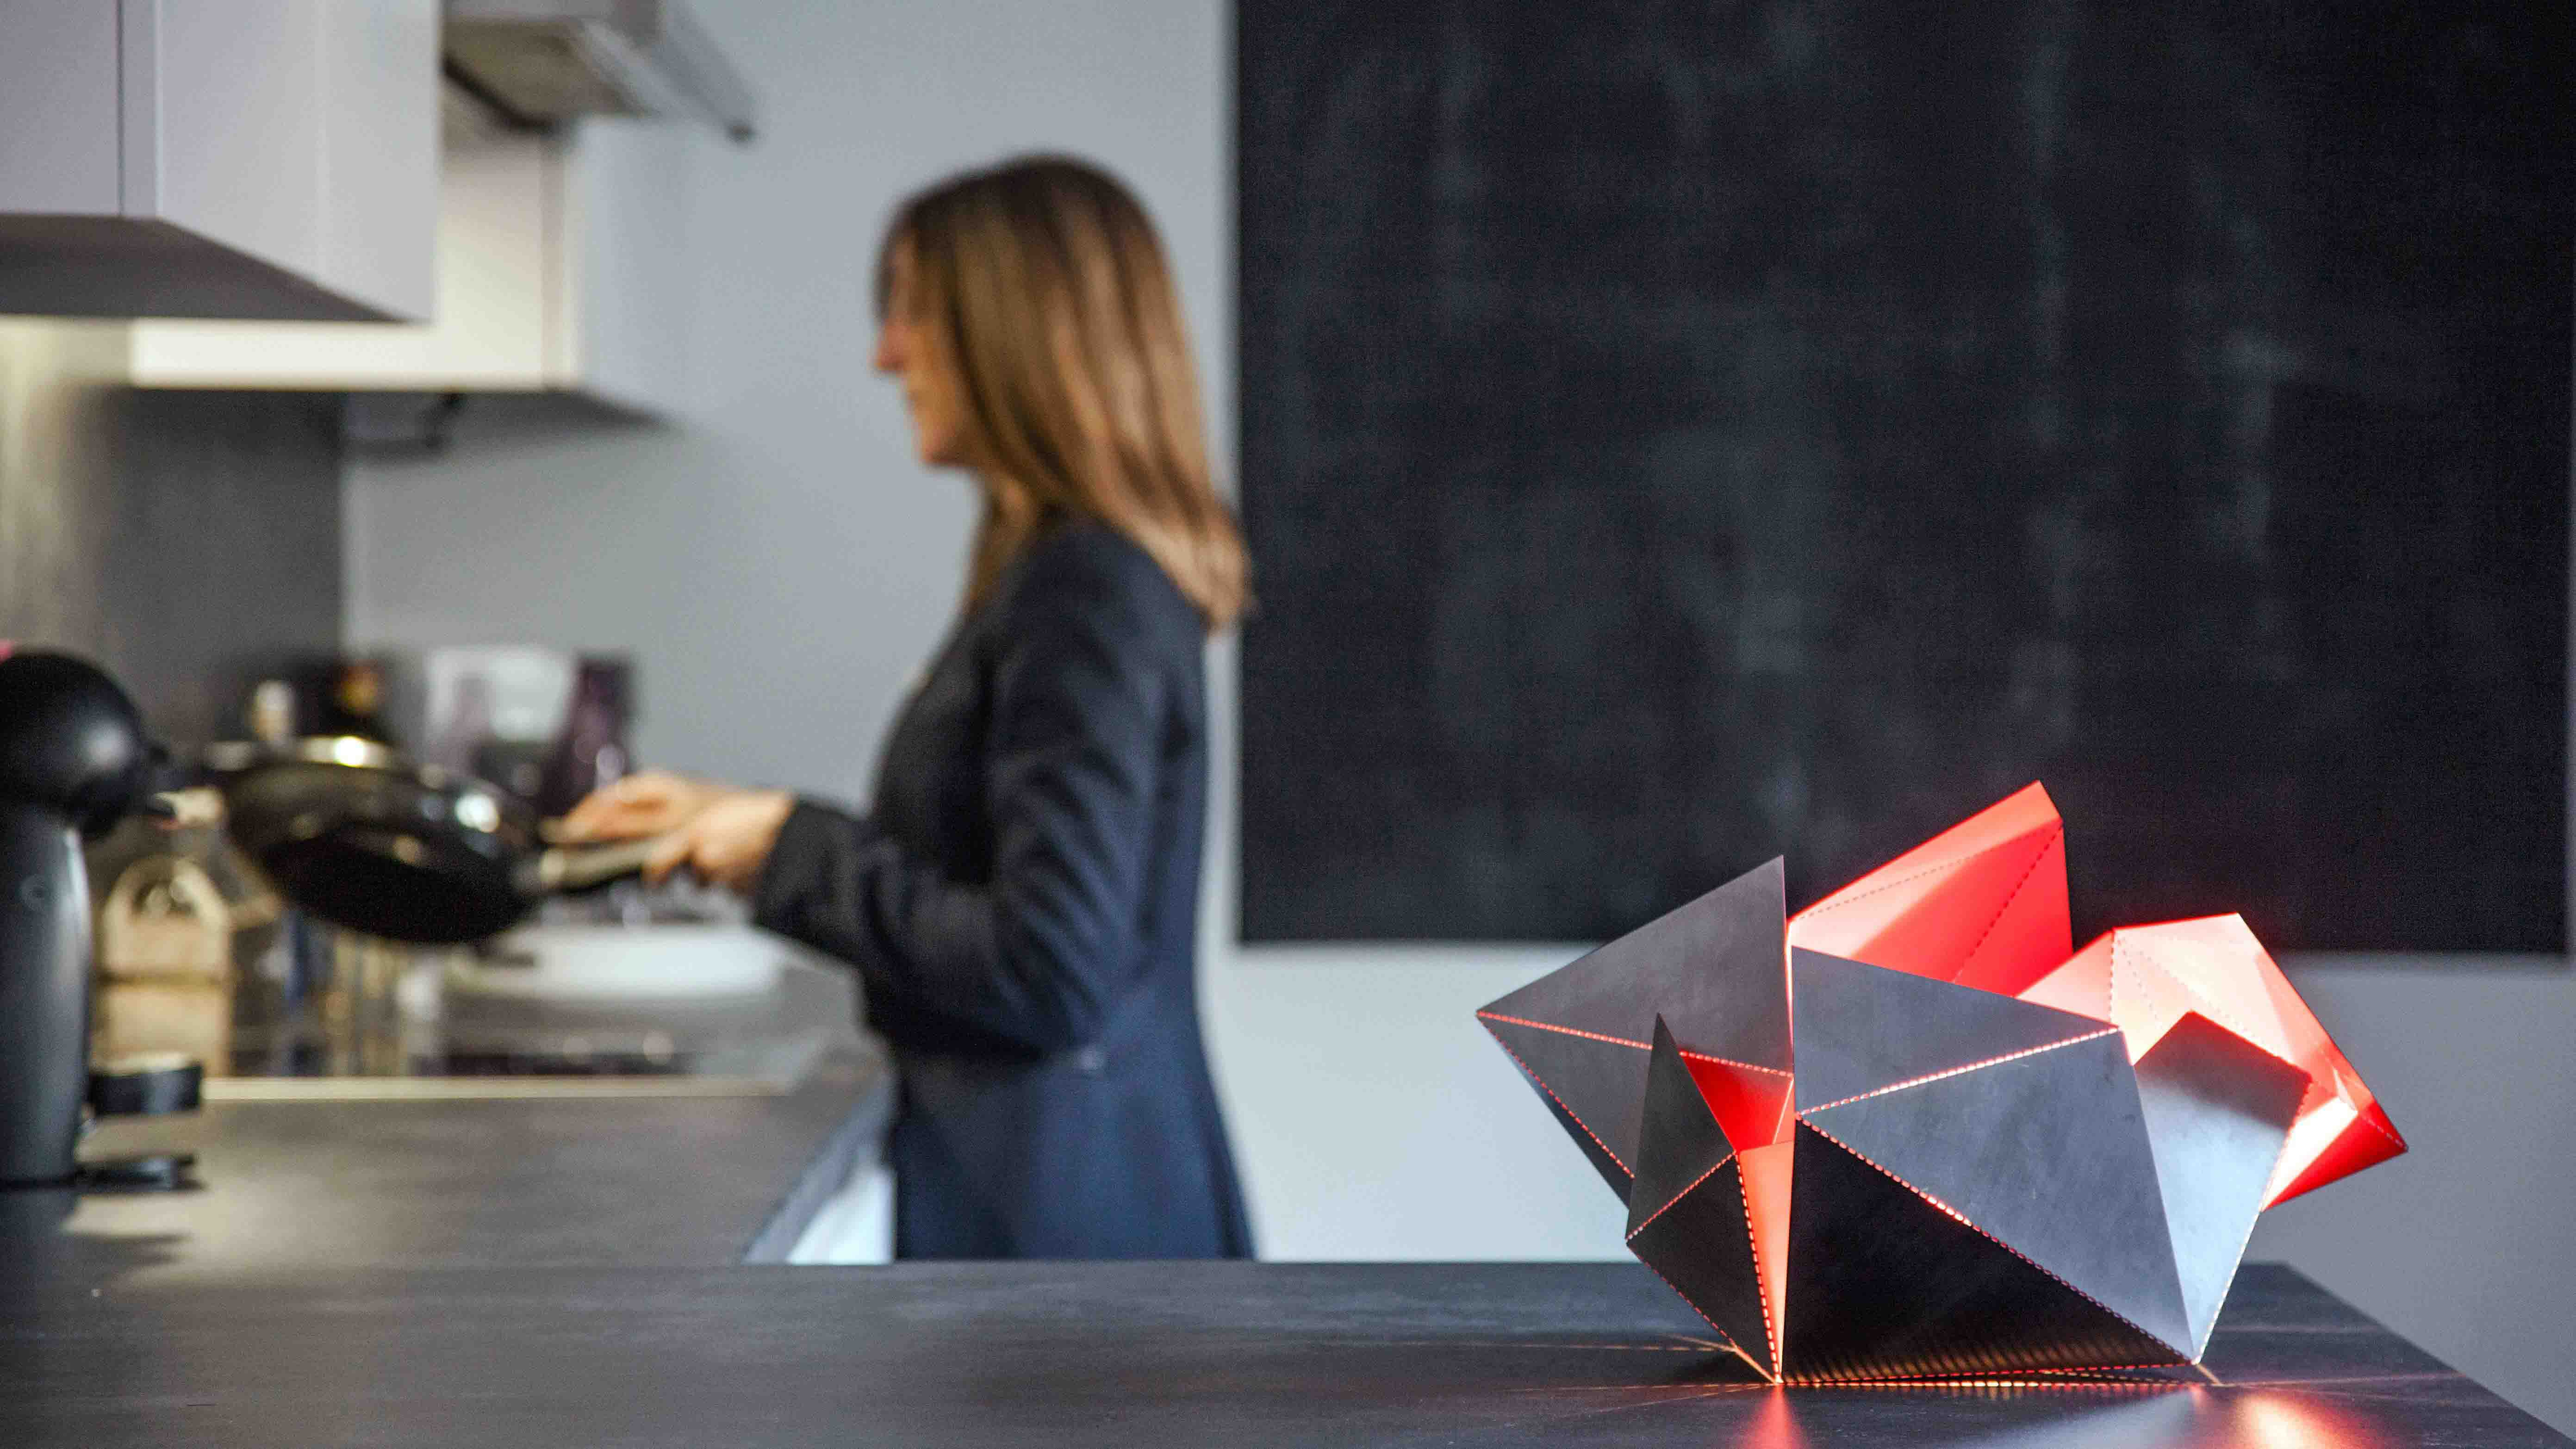 Origami lamp inhabitat green design innovation architecture the folding lamp lets you bend and fold your lamp like origami jeuxipadfo Gallery